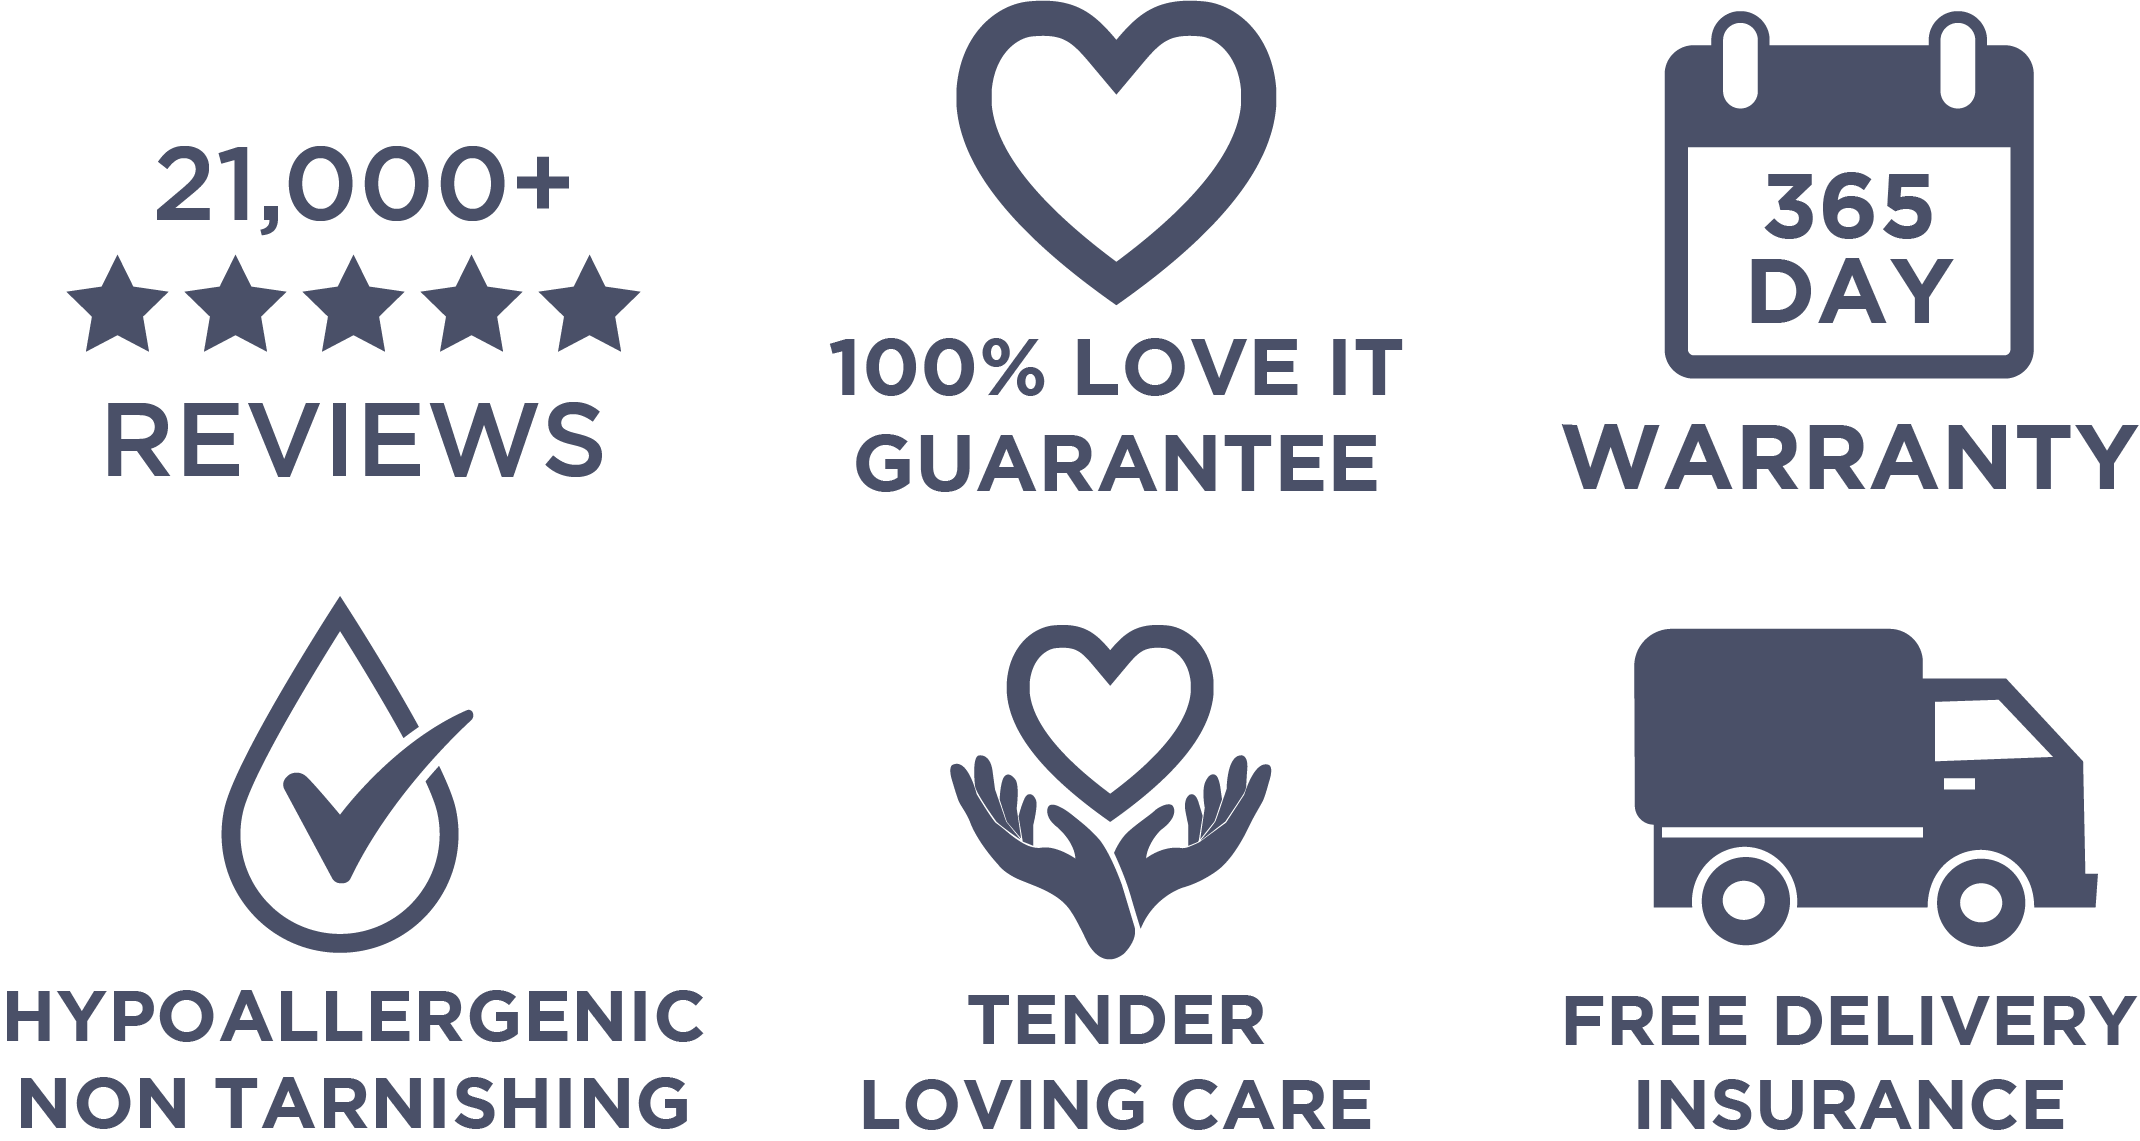 100% Love it guarantee, 365 Days warranty, Hypo allergenic, Tender Loving Care, Free Delivery Insurance